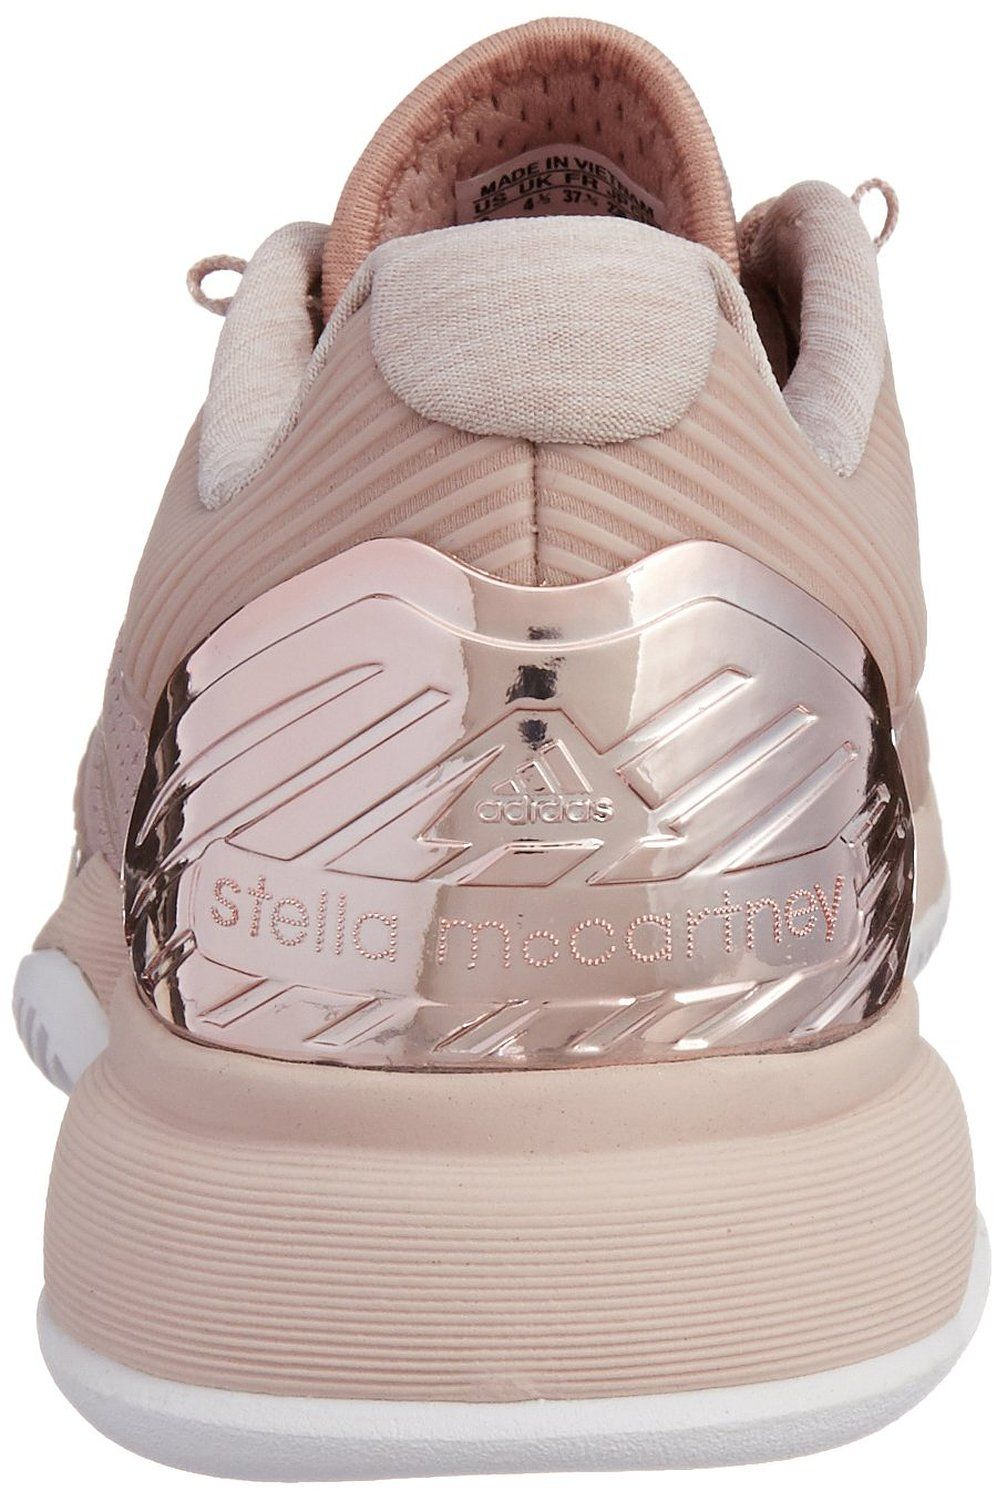 70d66c9b4cc6d adidas Stella McCartney Barricade Ladies Tennis Shoe, Light Pink ...